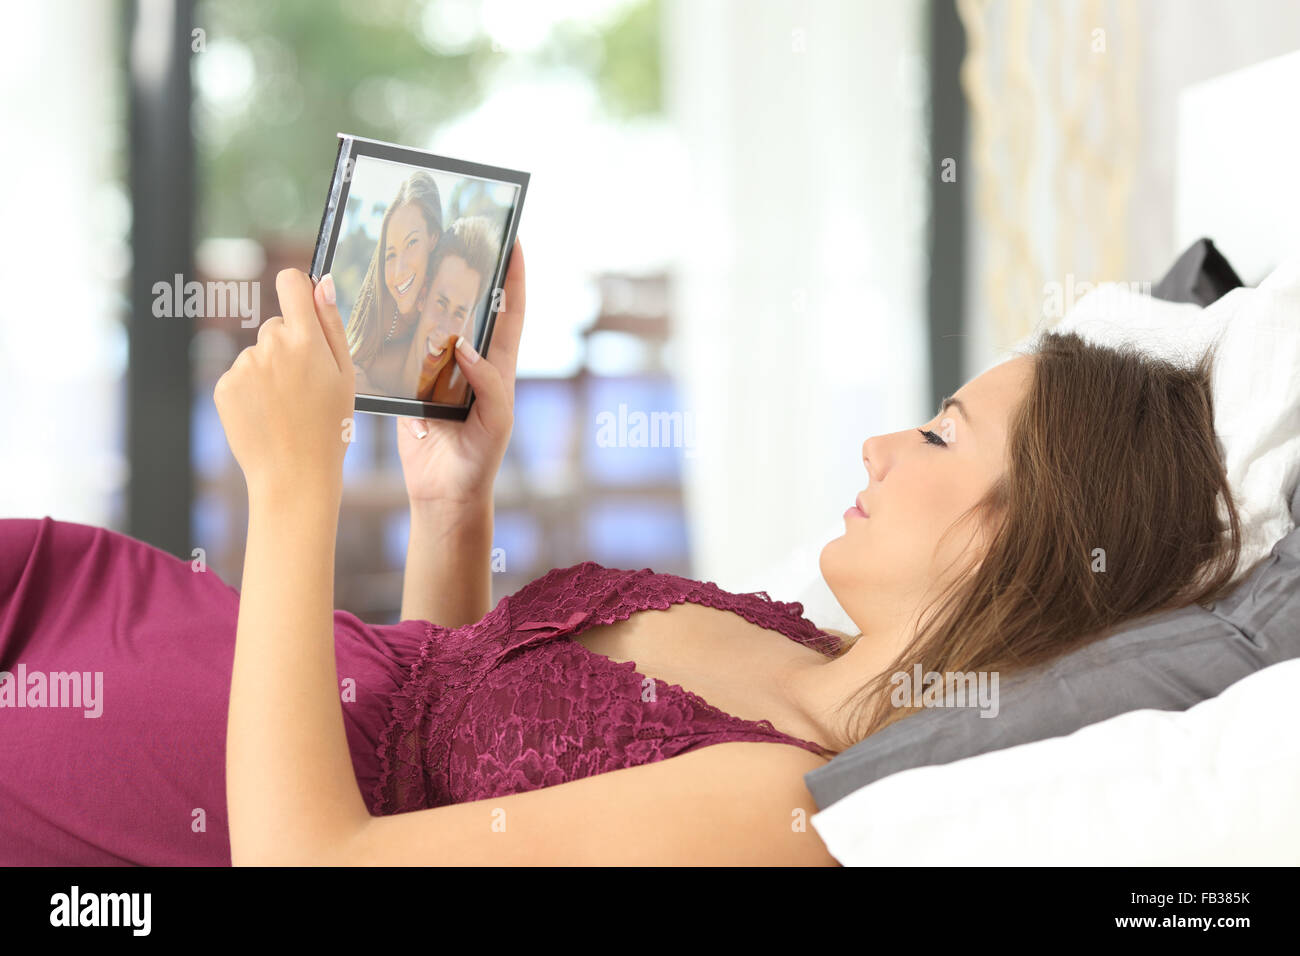 Longing woman looking a picture of her boyfriend in a frame on the bed at home - Stock Image